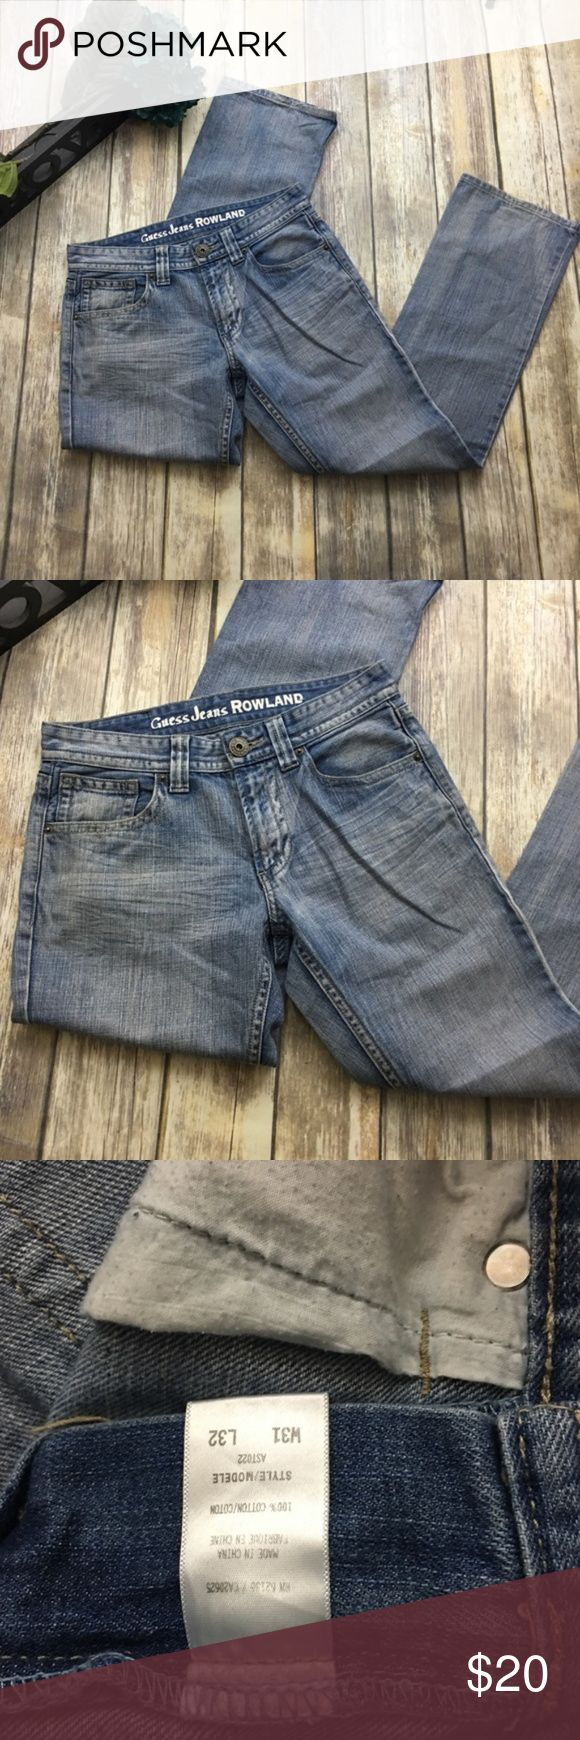 Guess Jeans ROWLAND Style Boot Cut Jeans Men's boot cut jeans Rowland style. Size waist 31 length 32. In excellent used condition. Guess Jeans Bootcut